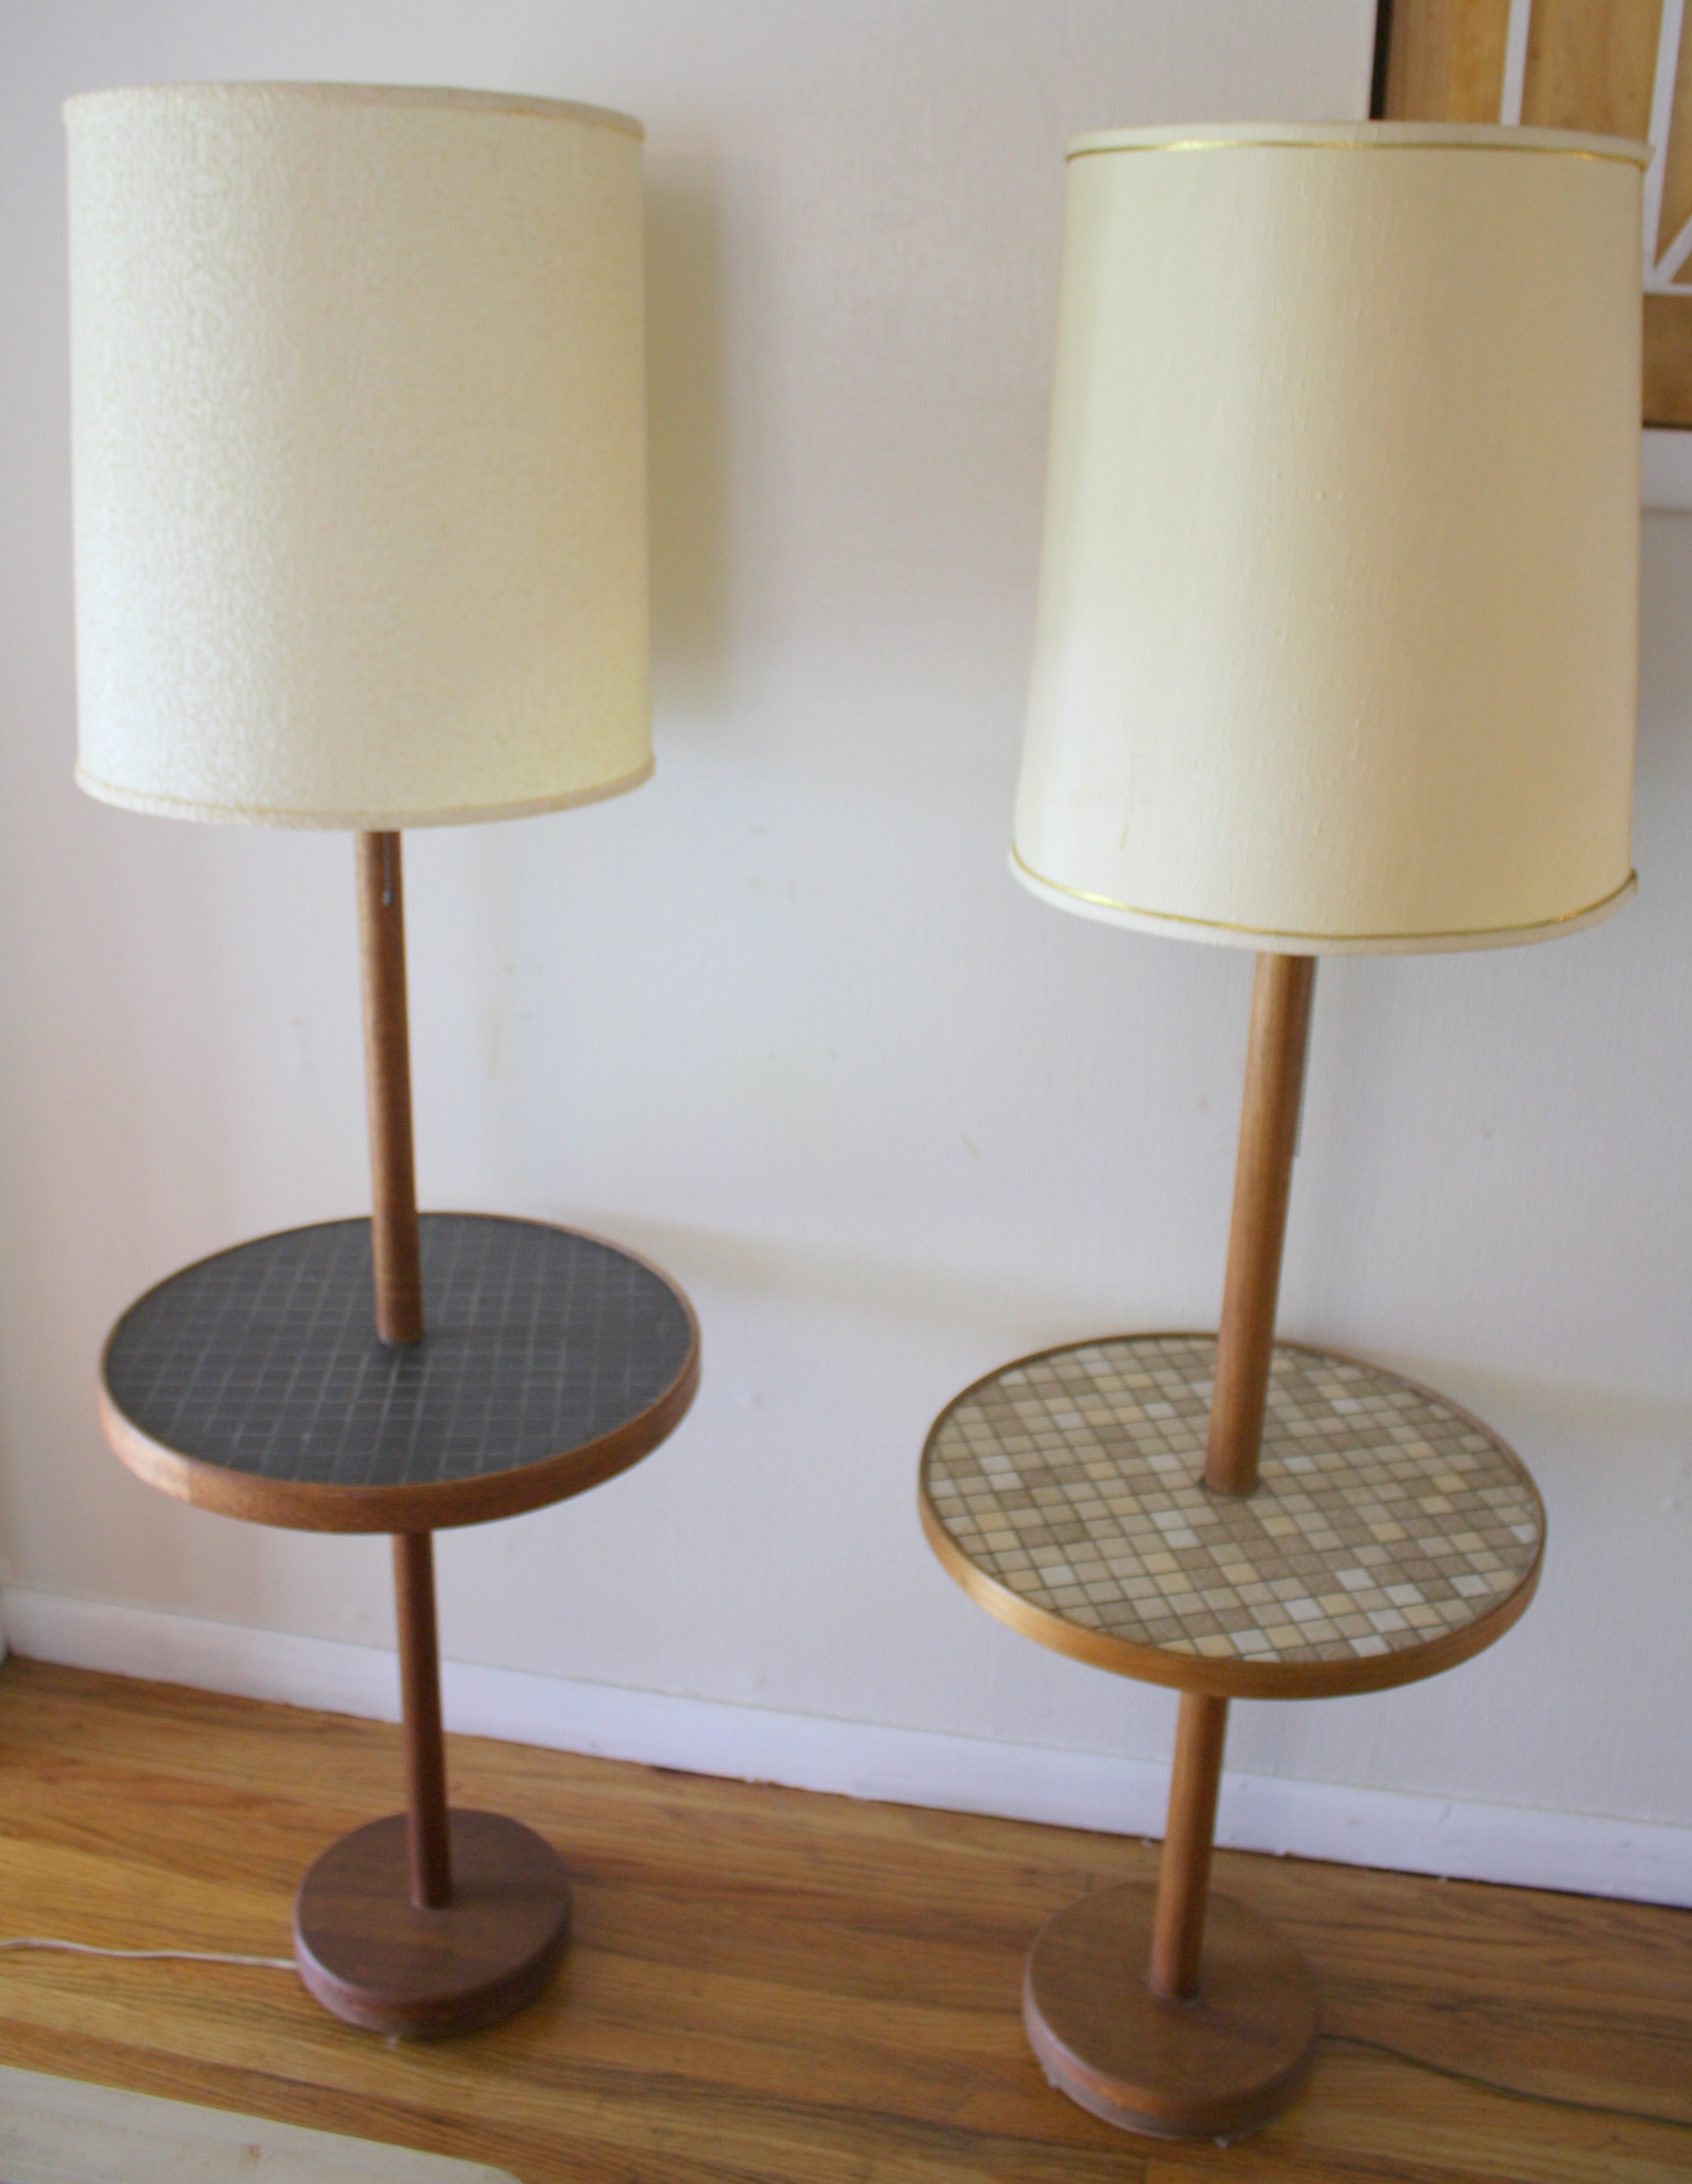 25 facts about vintage floor lamps you should to know warisan a preferred vintage flooring lamp restoration approach is to exchange the electrical workings with modern parts to make these lamps safer and extra arubaitofo Choice Image